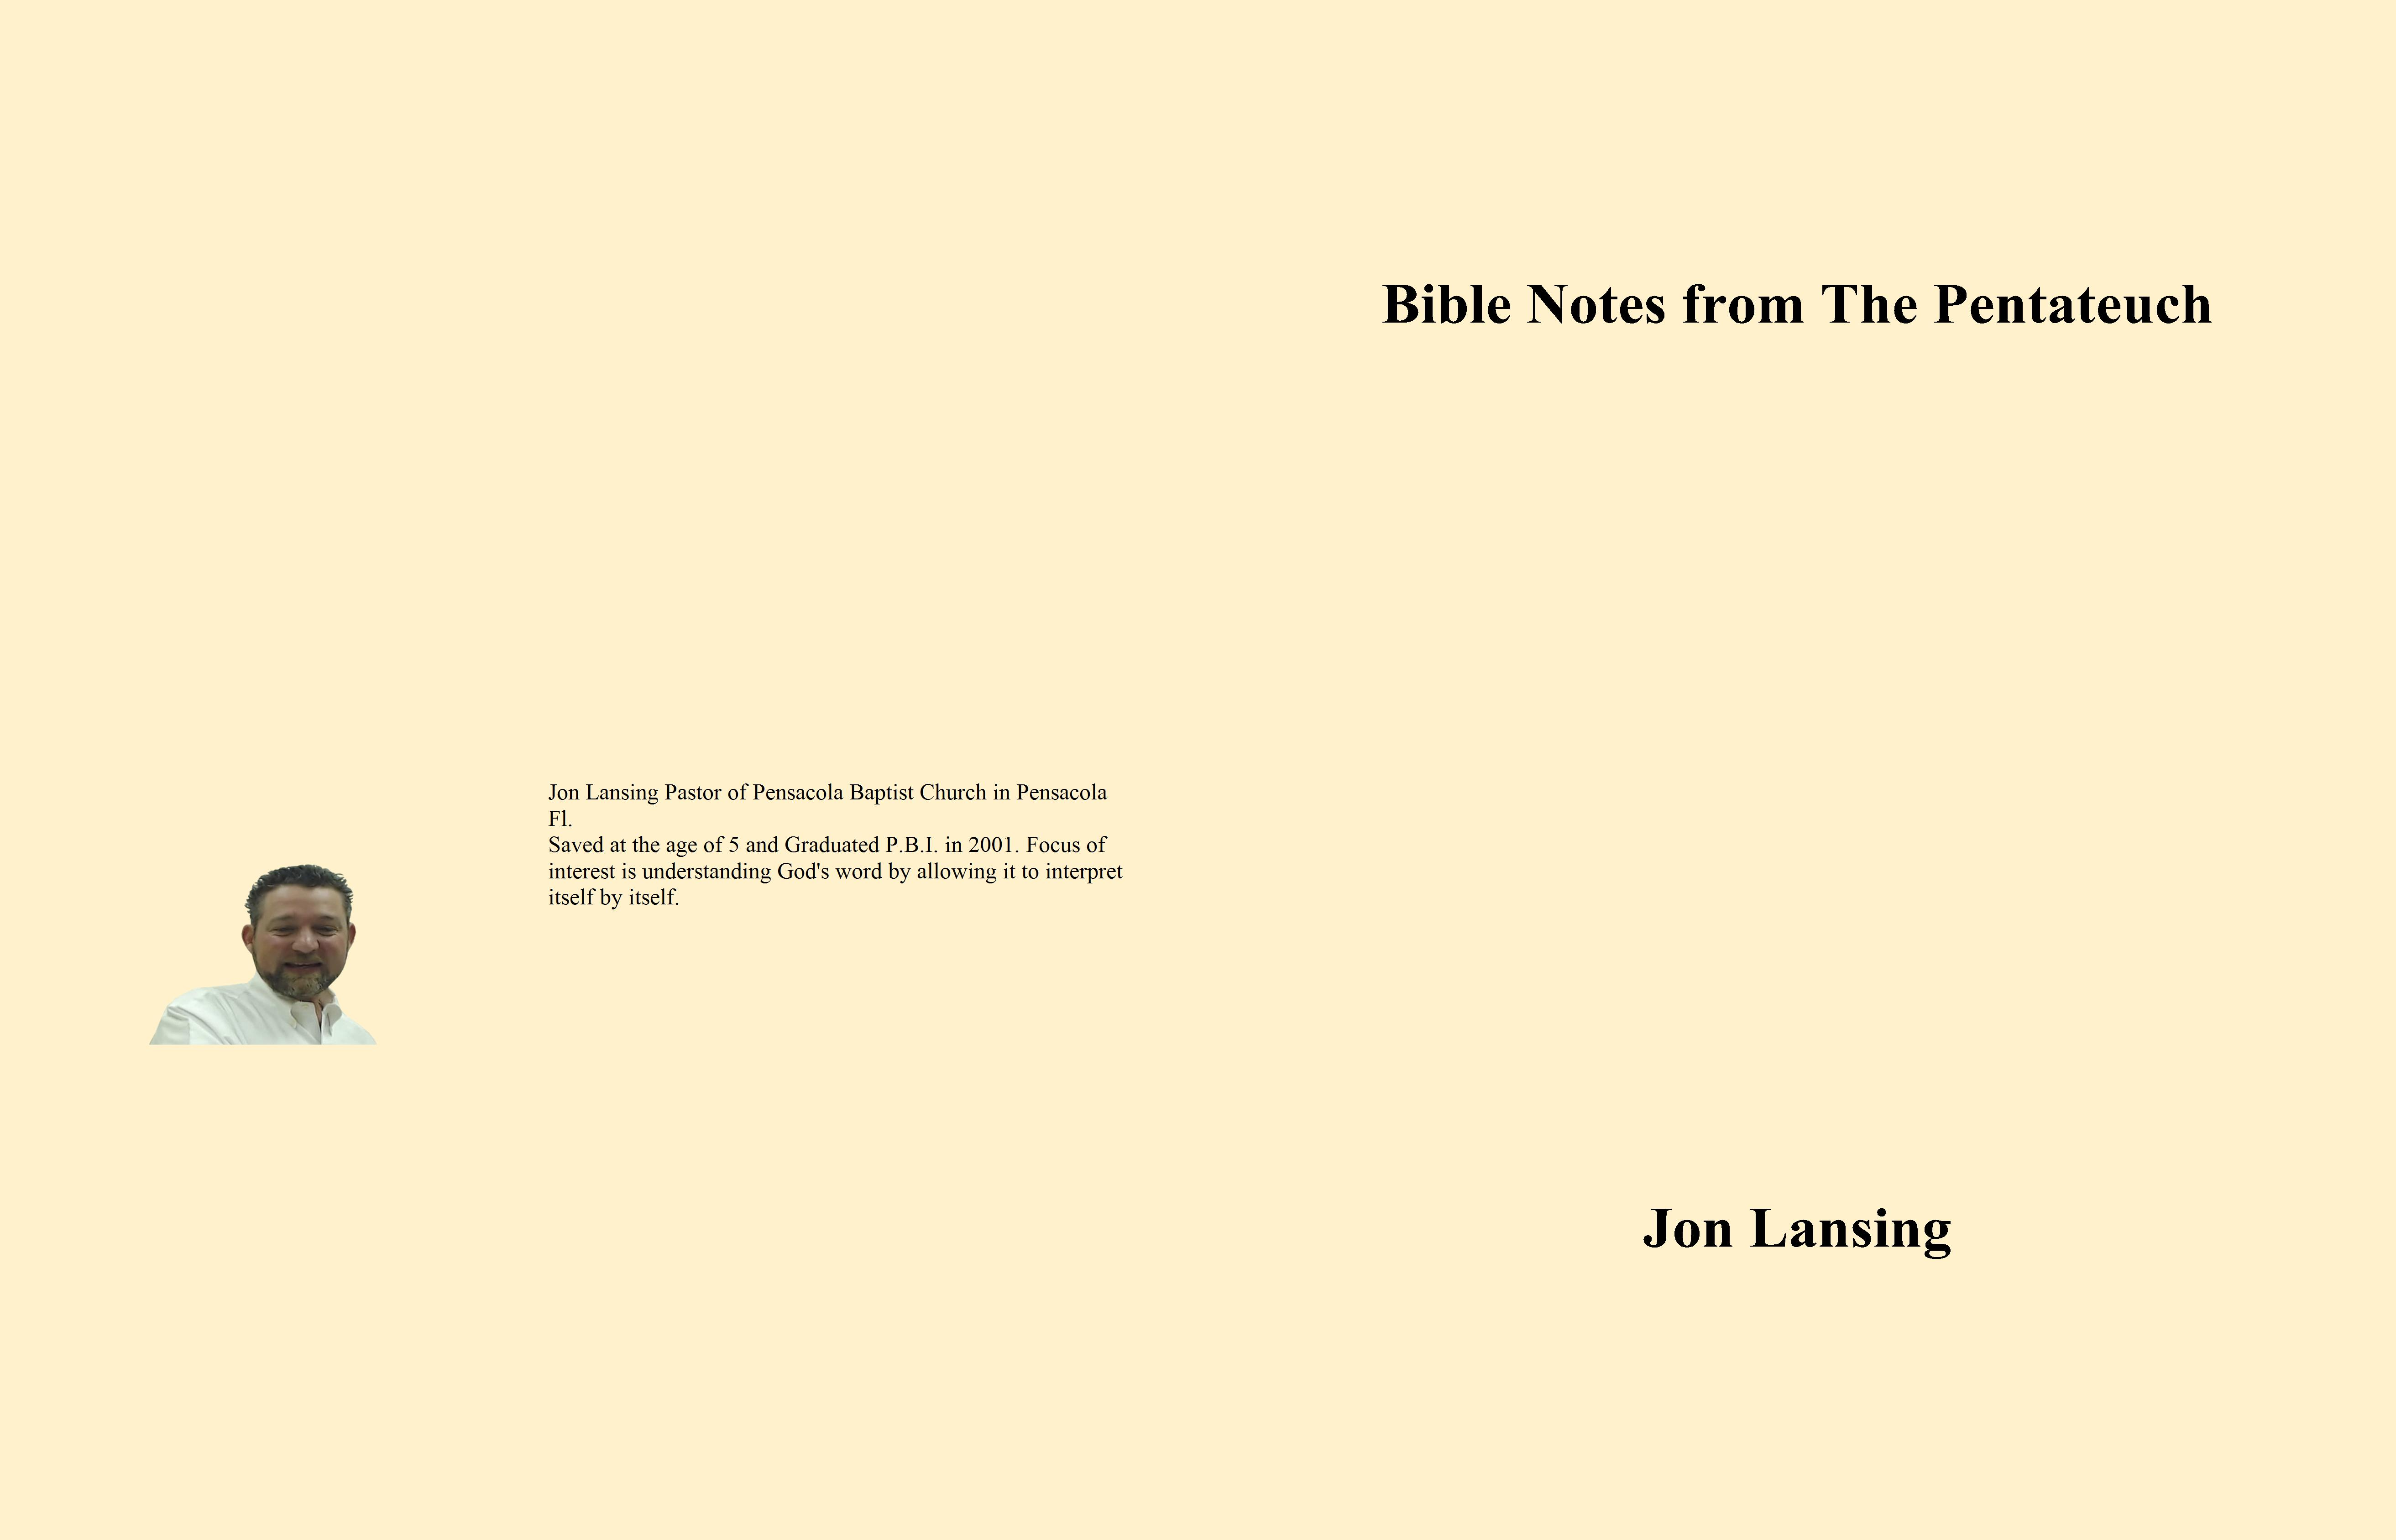 Bible Notes from The Pentateuch cover image